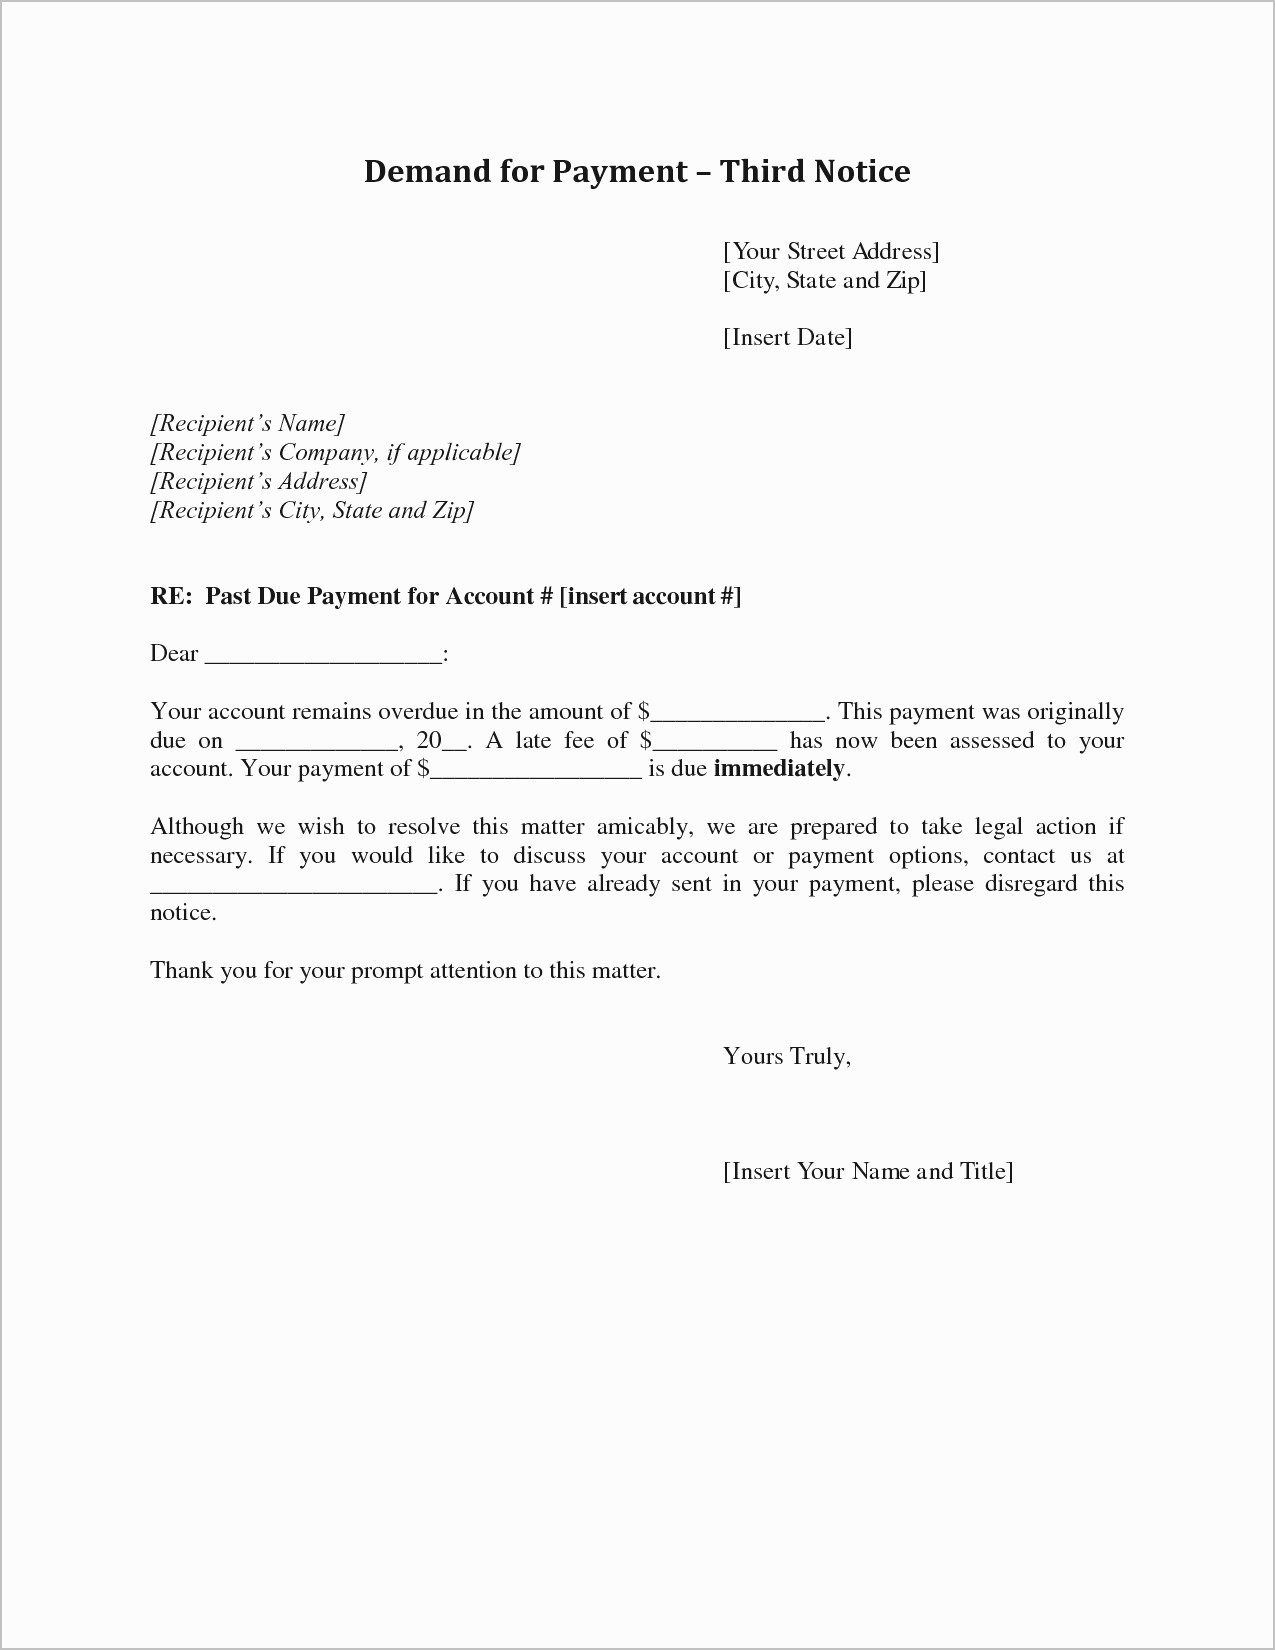 Demand for Payment Letter Template - Sample Demand Letter for Unpaid Rent Beautiful Letter Od Demand